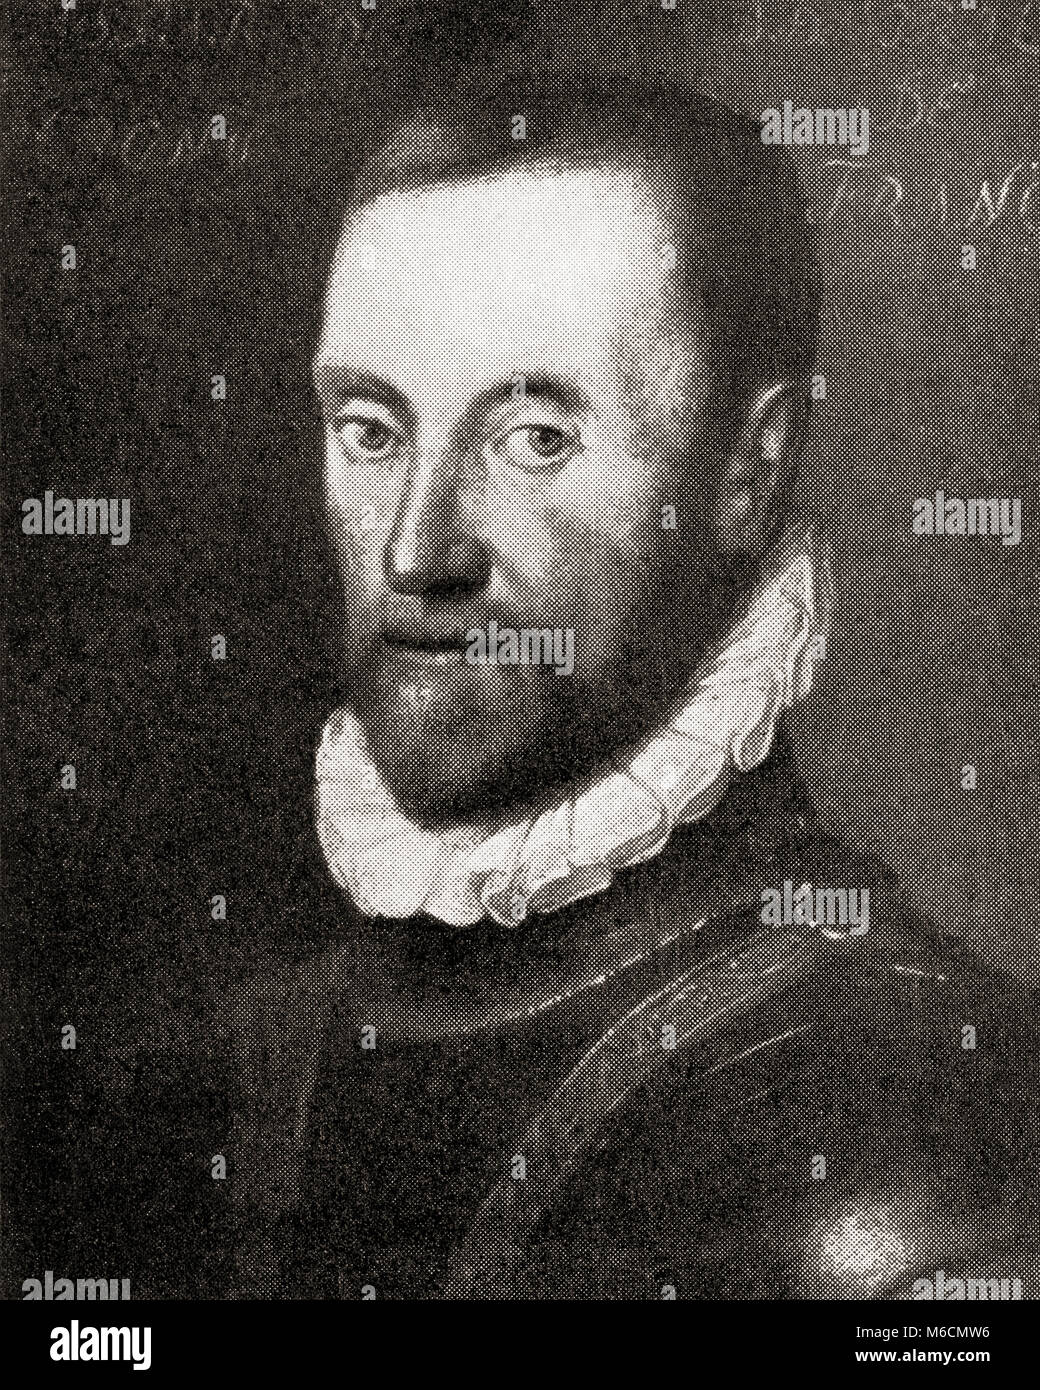 Gaspard de Coligny, Seigneur de Châtillon, 1519 - 1572. French nobleman, admiral and Huguenot leader in the - Stock Image